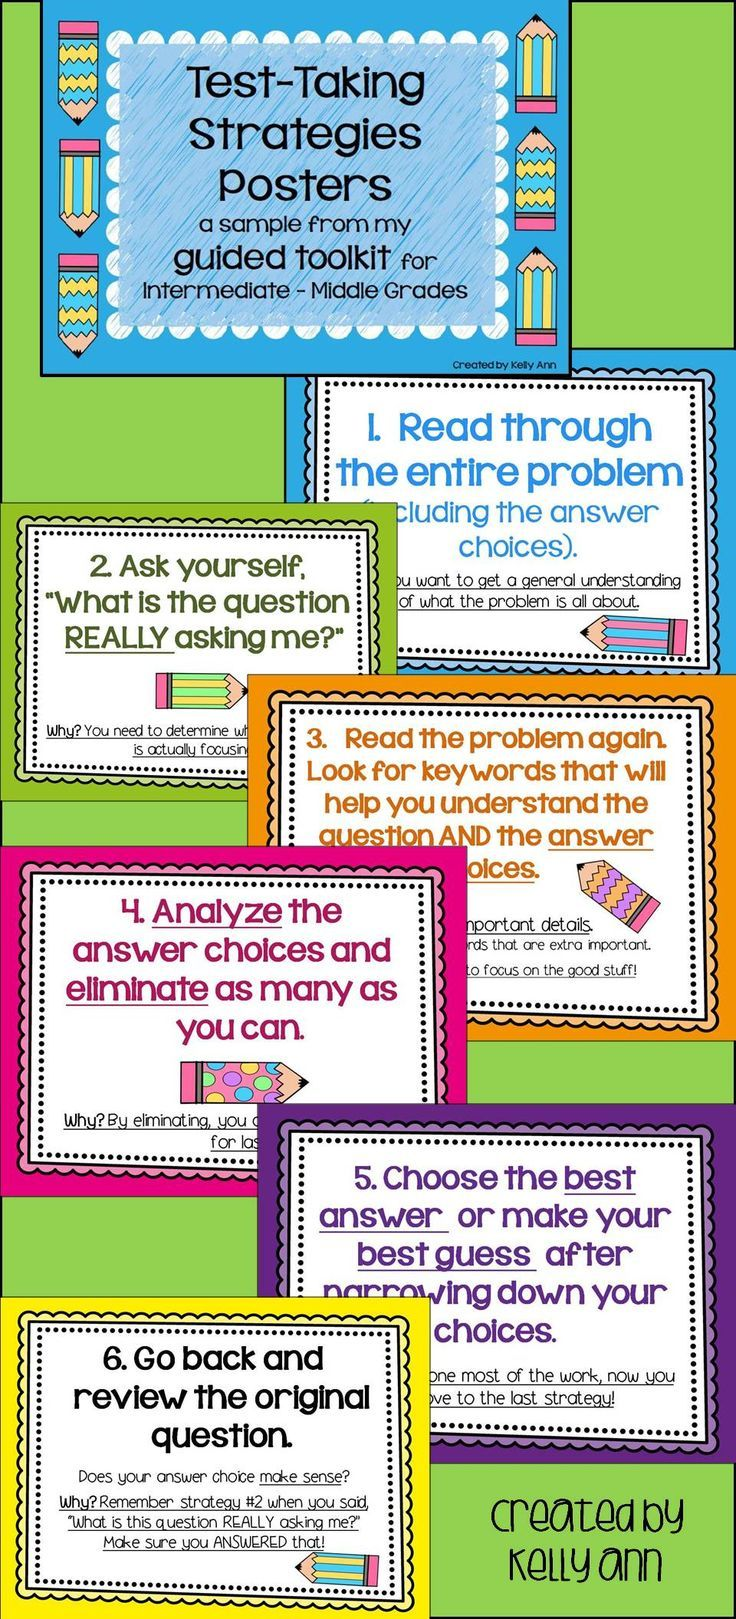 FREE TEST-TAKING STRATEGIES POSTERS for Intermediate-Middle grades ...